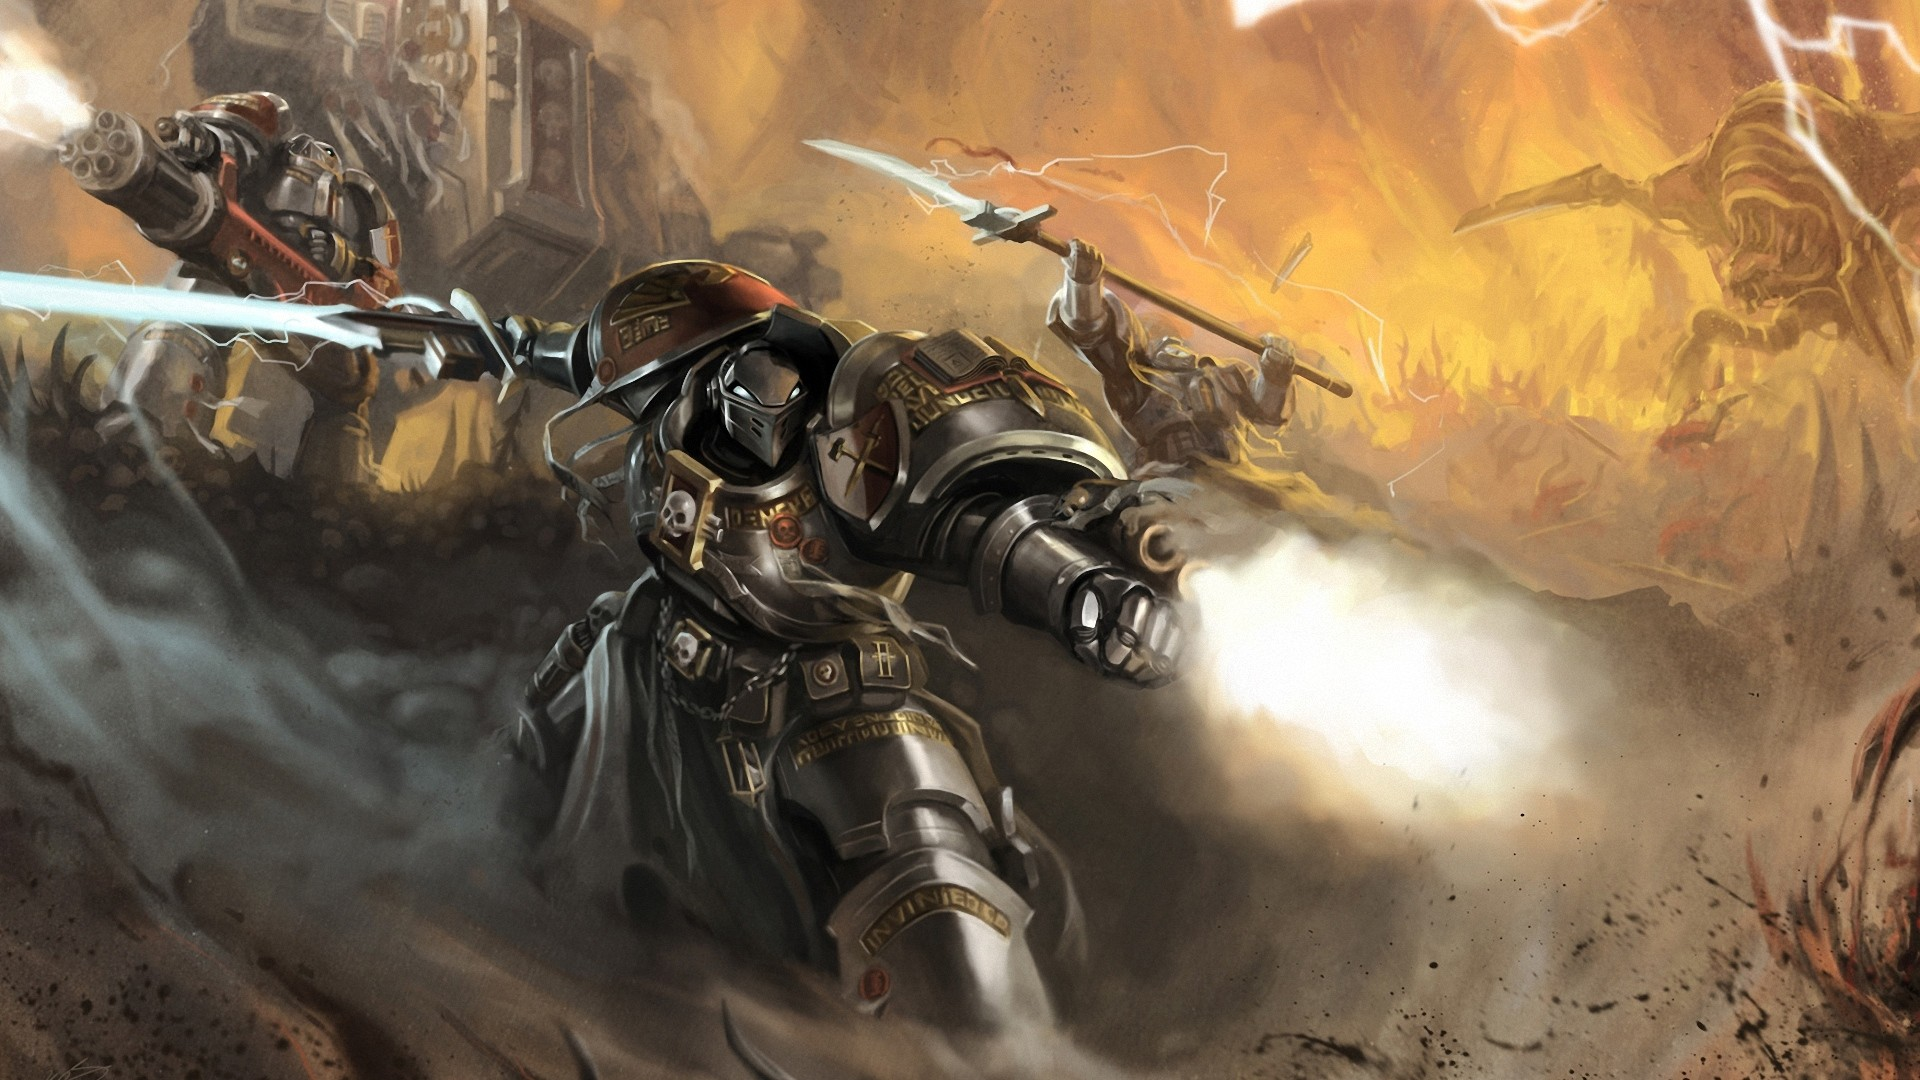 1920x1080 Preview wallpaper okita, warhammer 40k, space marines, robot, weapon, sword,